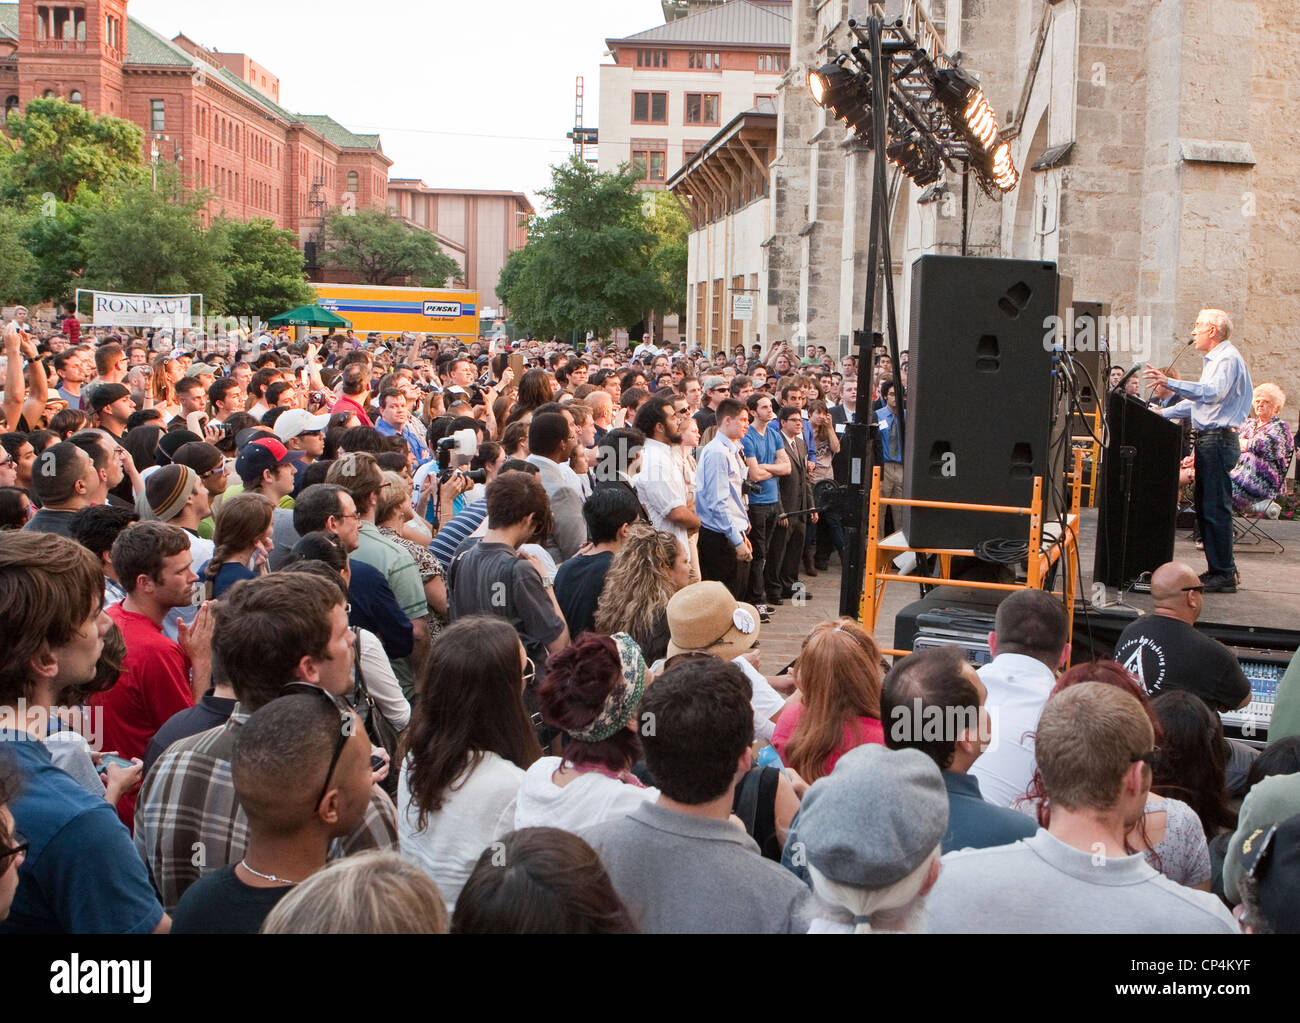 April 12th, 2012 San Antonio, Texas: GOP presidential candidate Ron Paul ends his campaign swing through his home - Stock Image